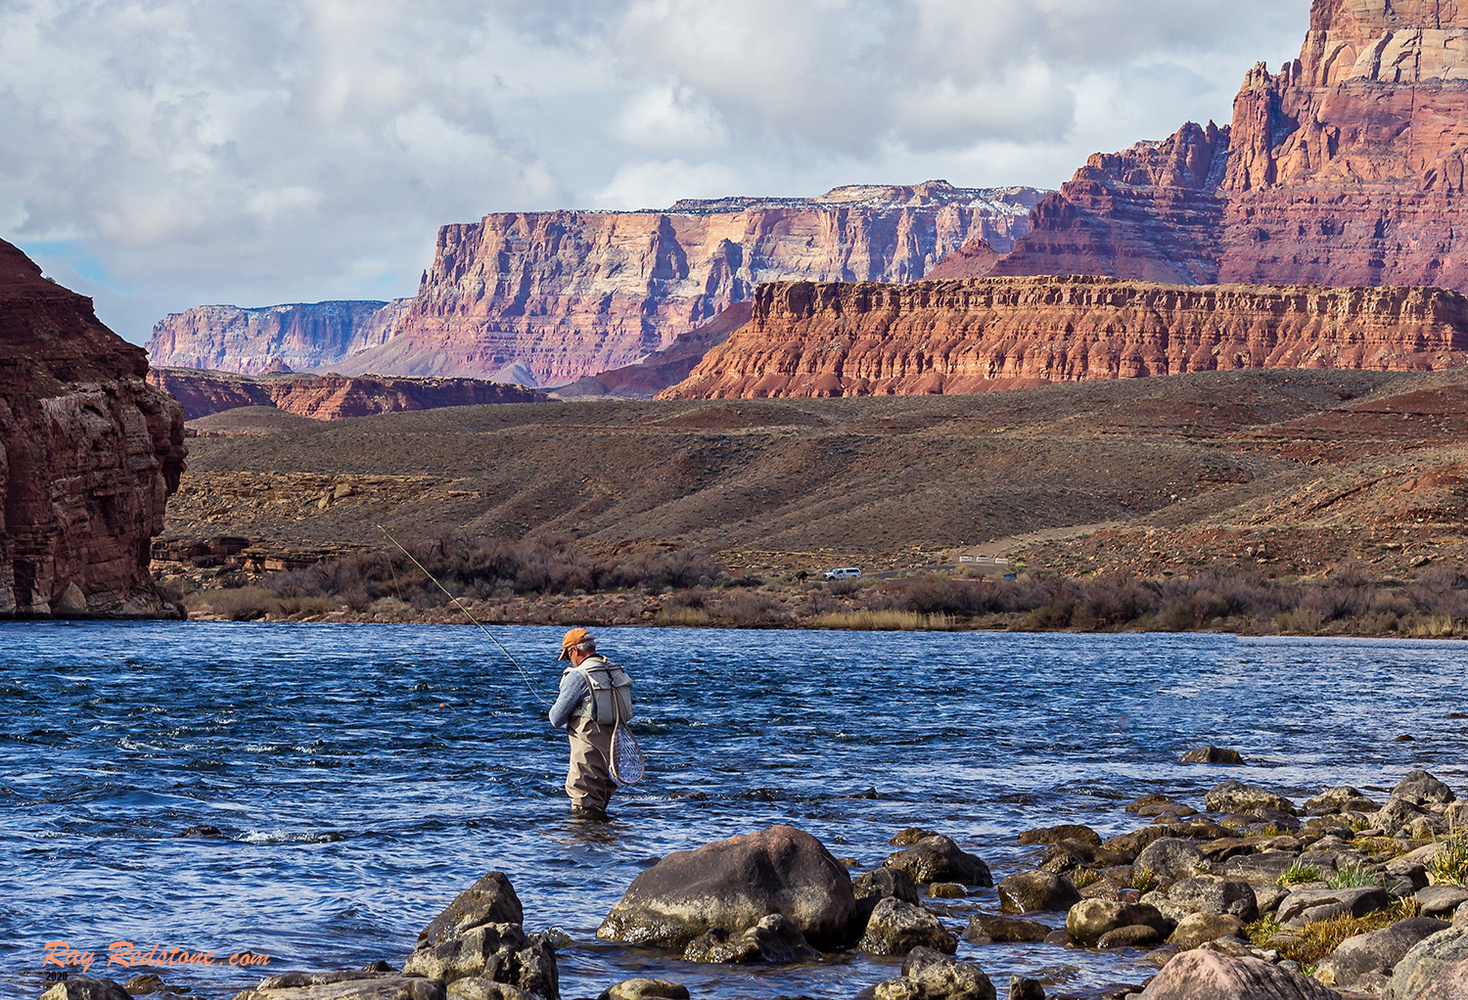 Lone Fly Fisherman On Colorado River At Lees Ferry, AZ by Ray Redstone